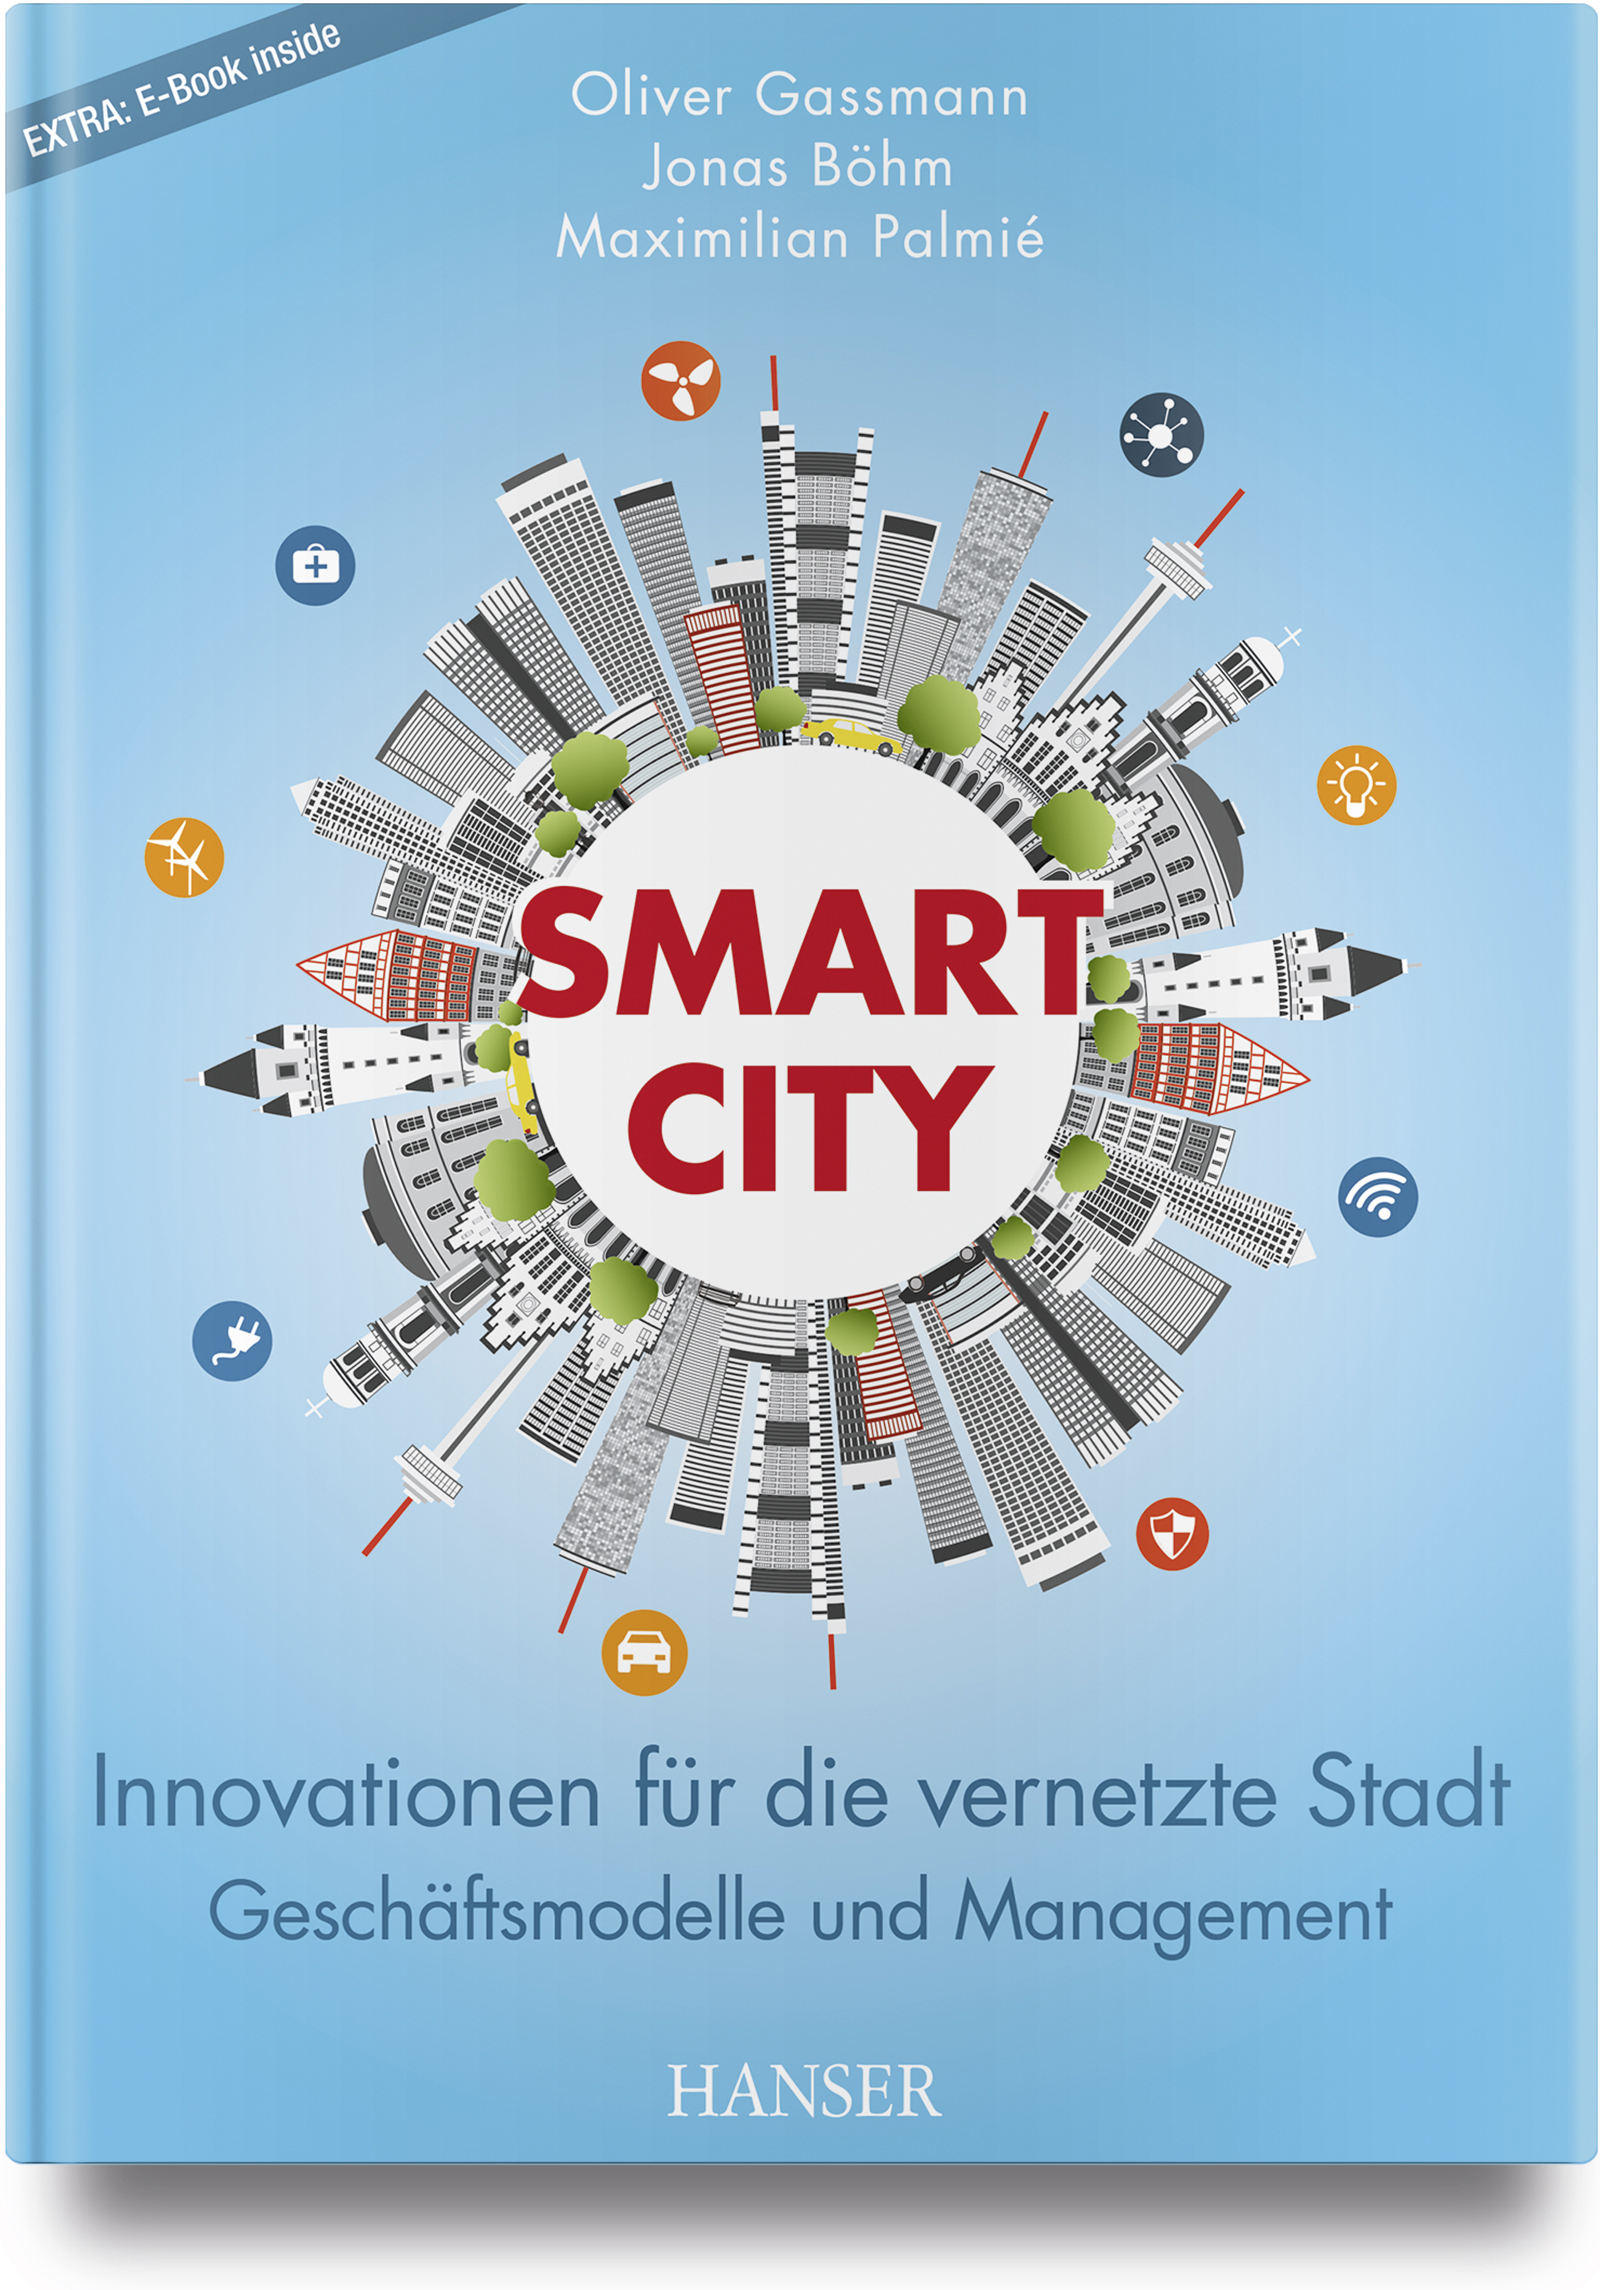 Gassmann, Böhm, Palmié, Smart City, 978-3-446-45572-6